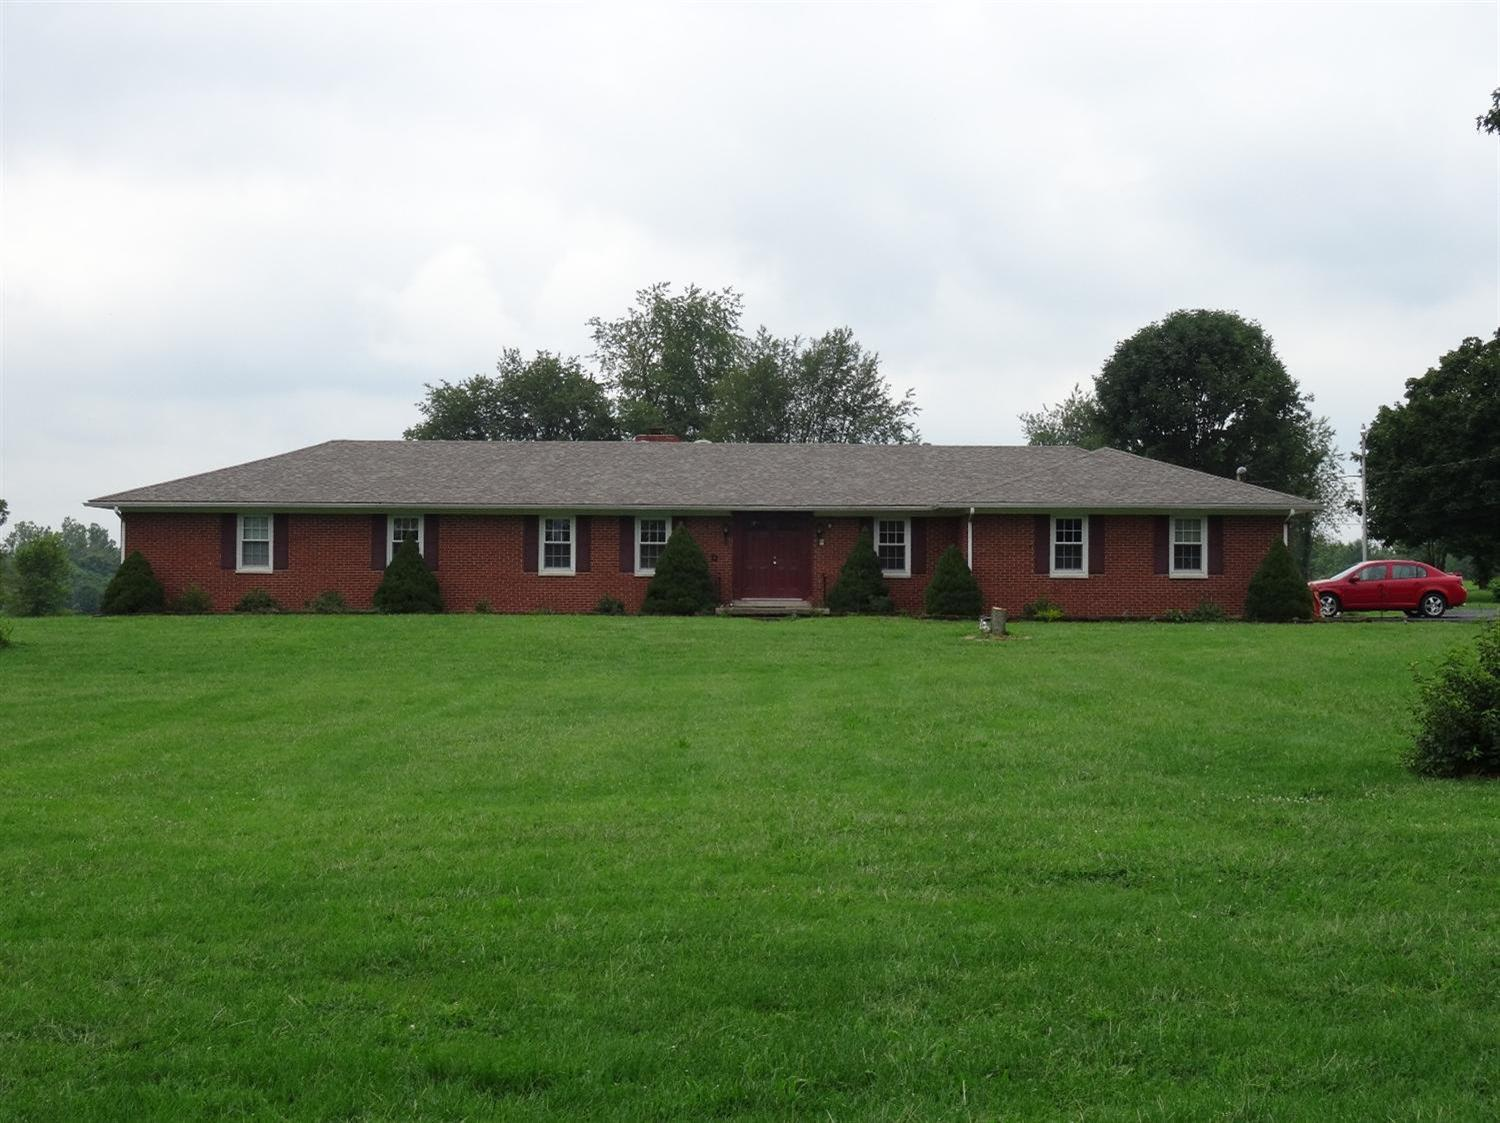 Property for sale at 5181%20Briar%20Hill%20Rd%20Lexington,%20KY%2040516